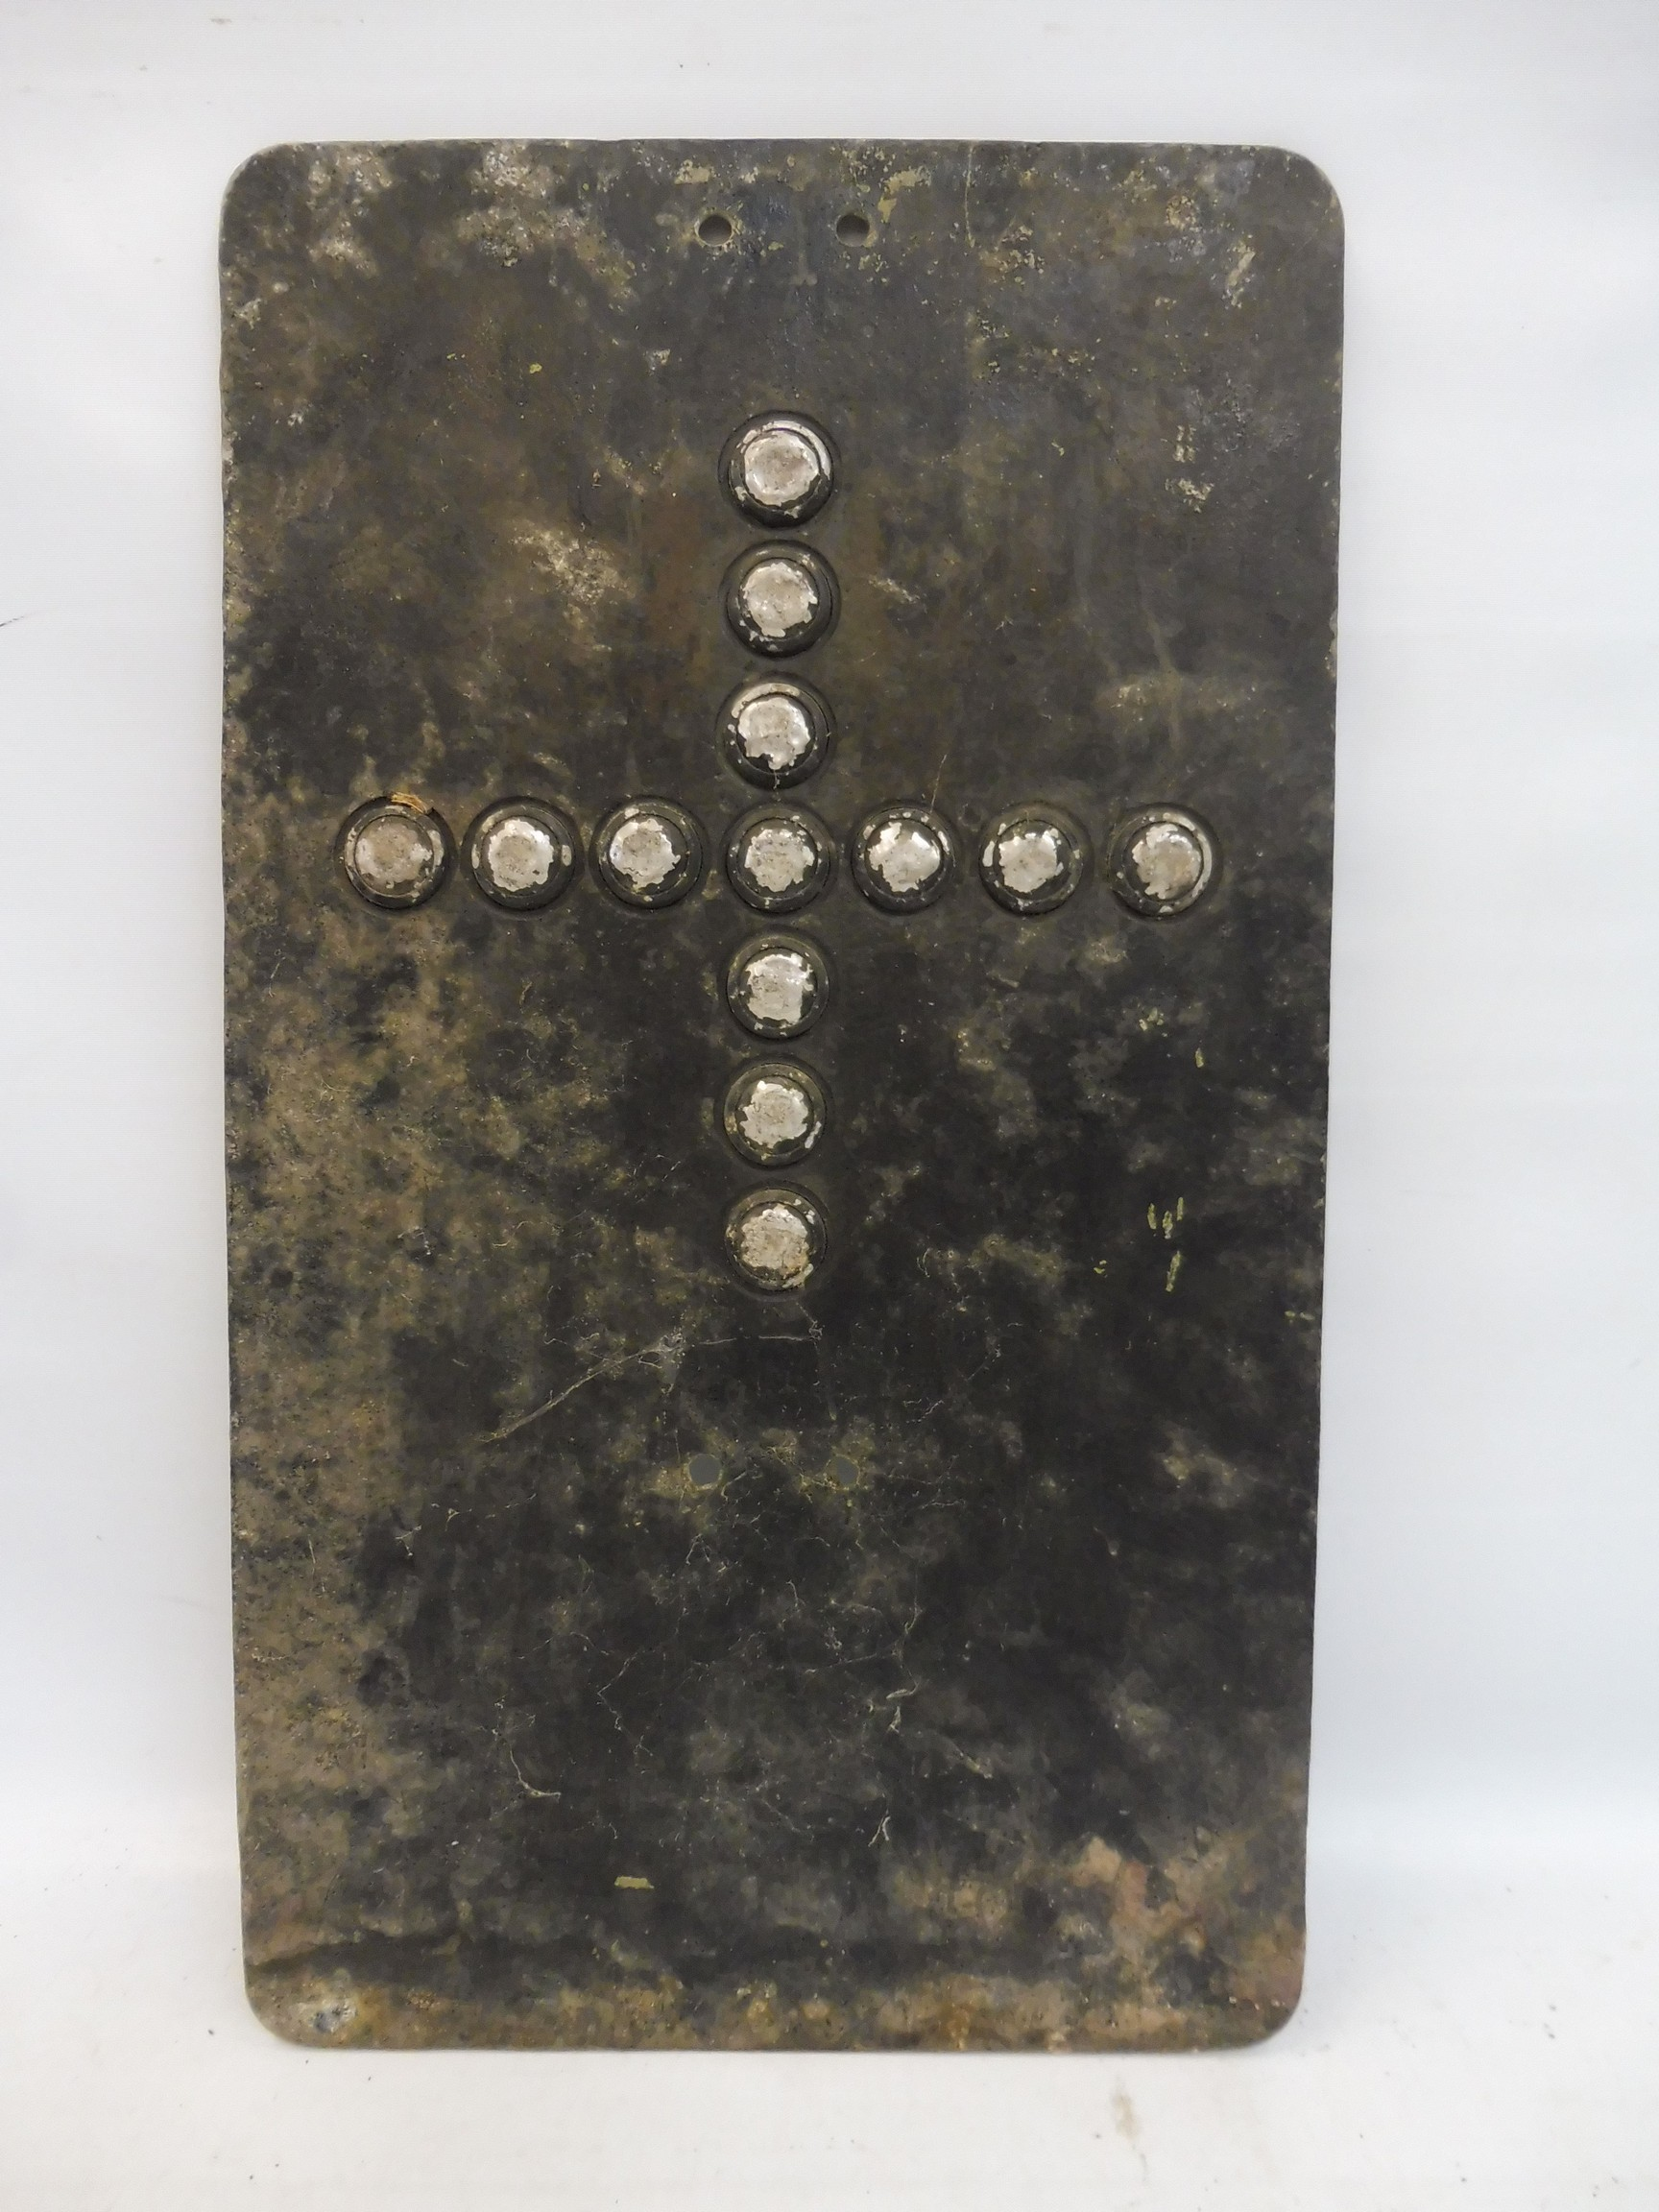 """Cross Roads - an aluminium road sign with glass reflective discs, 12 x 21"""". - Image 2 of 2"""